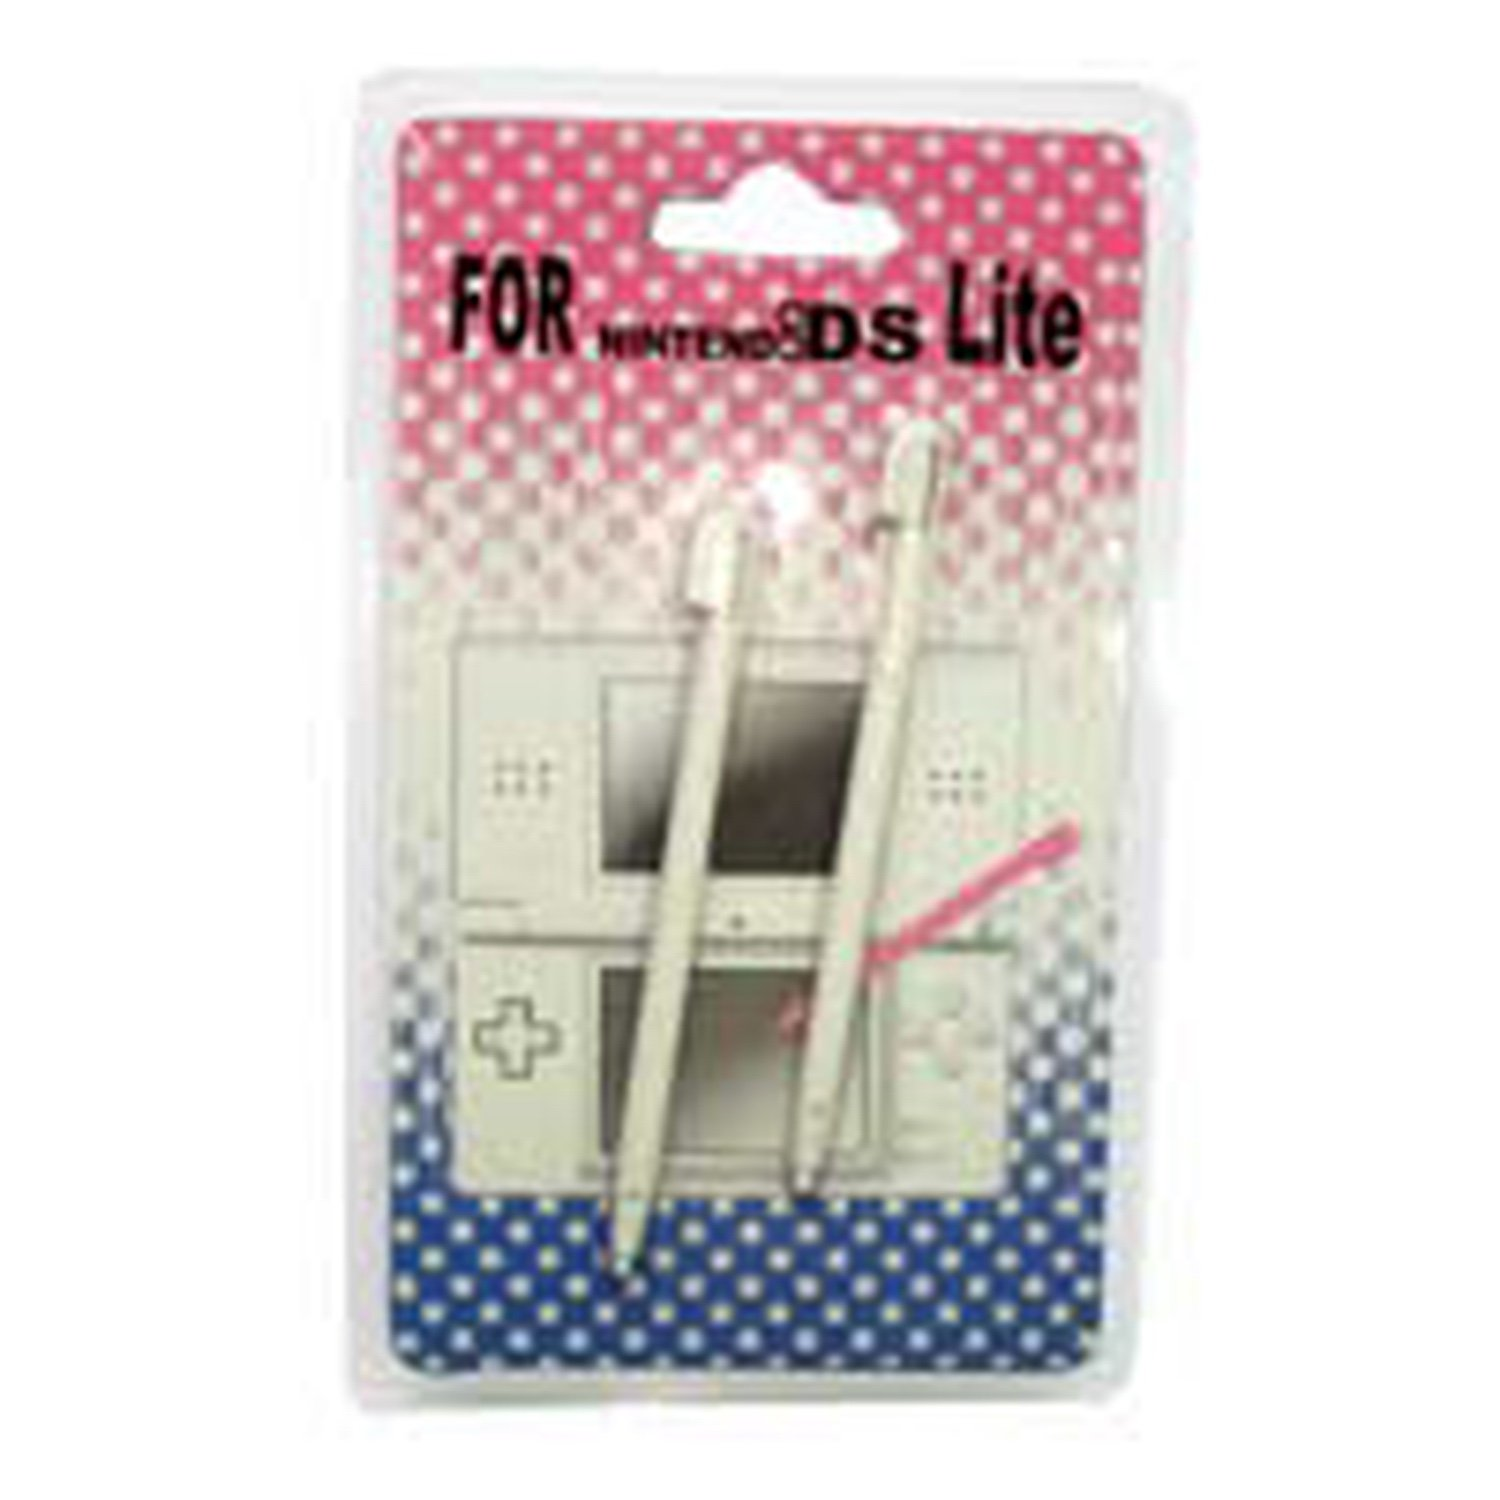 Nintendo DS LITE Stylus Pen retractable 2 pcs WHITE nintendo ds lite stylus pen retractable 2 pcs white